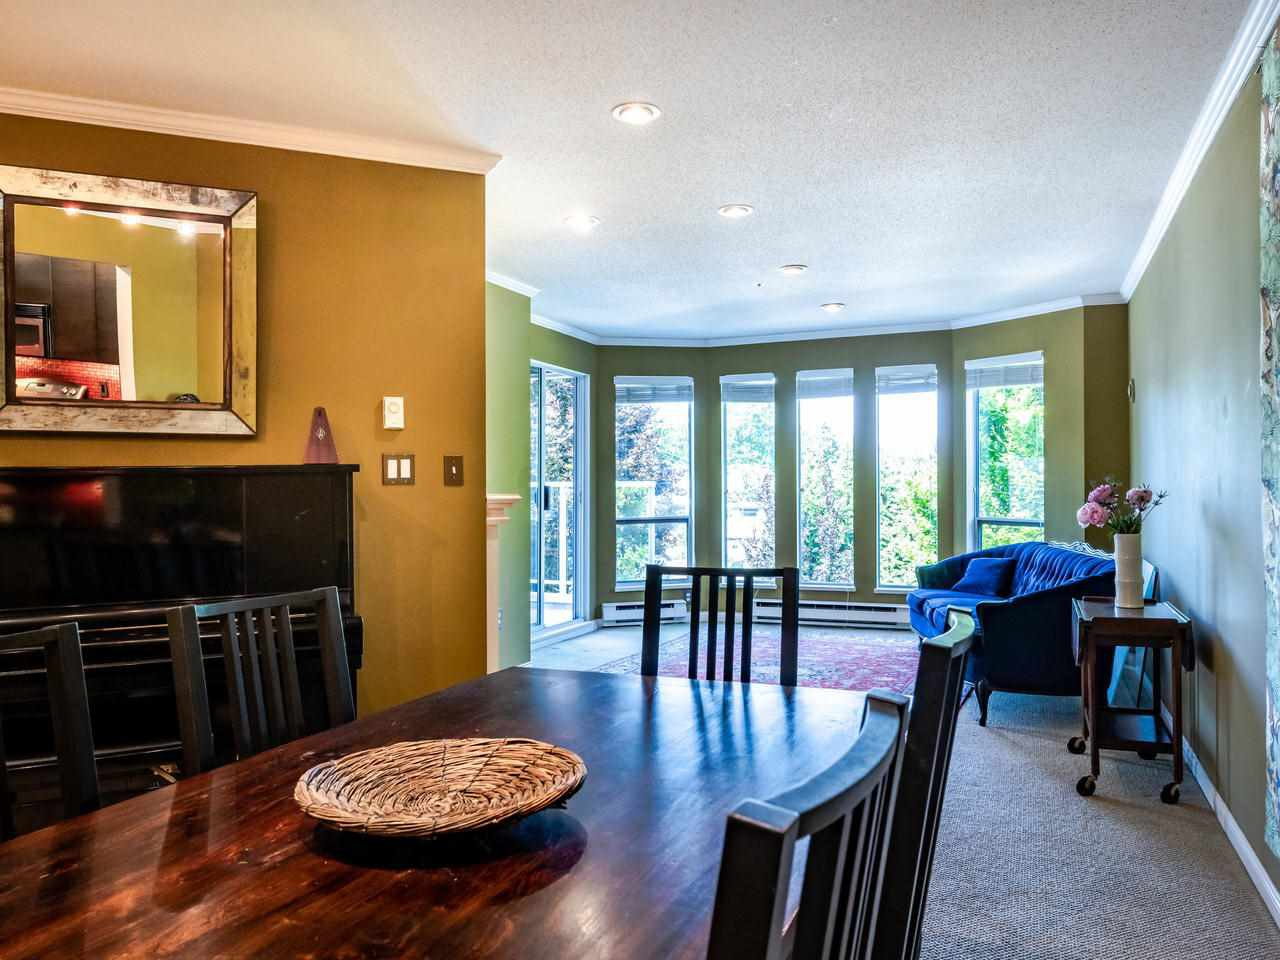 """Photo 10: Photos: 303 2288 W 12TH Avenue in Vancouver: Kitsilano Condo for sale in """"Connaught Point"""" (Vancouver West)  : MLS®# R2494985"""